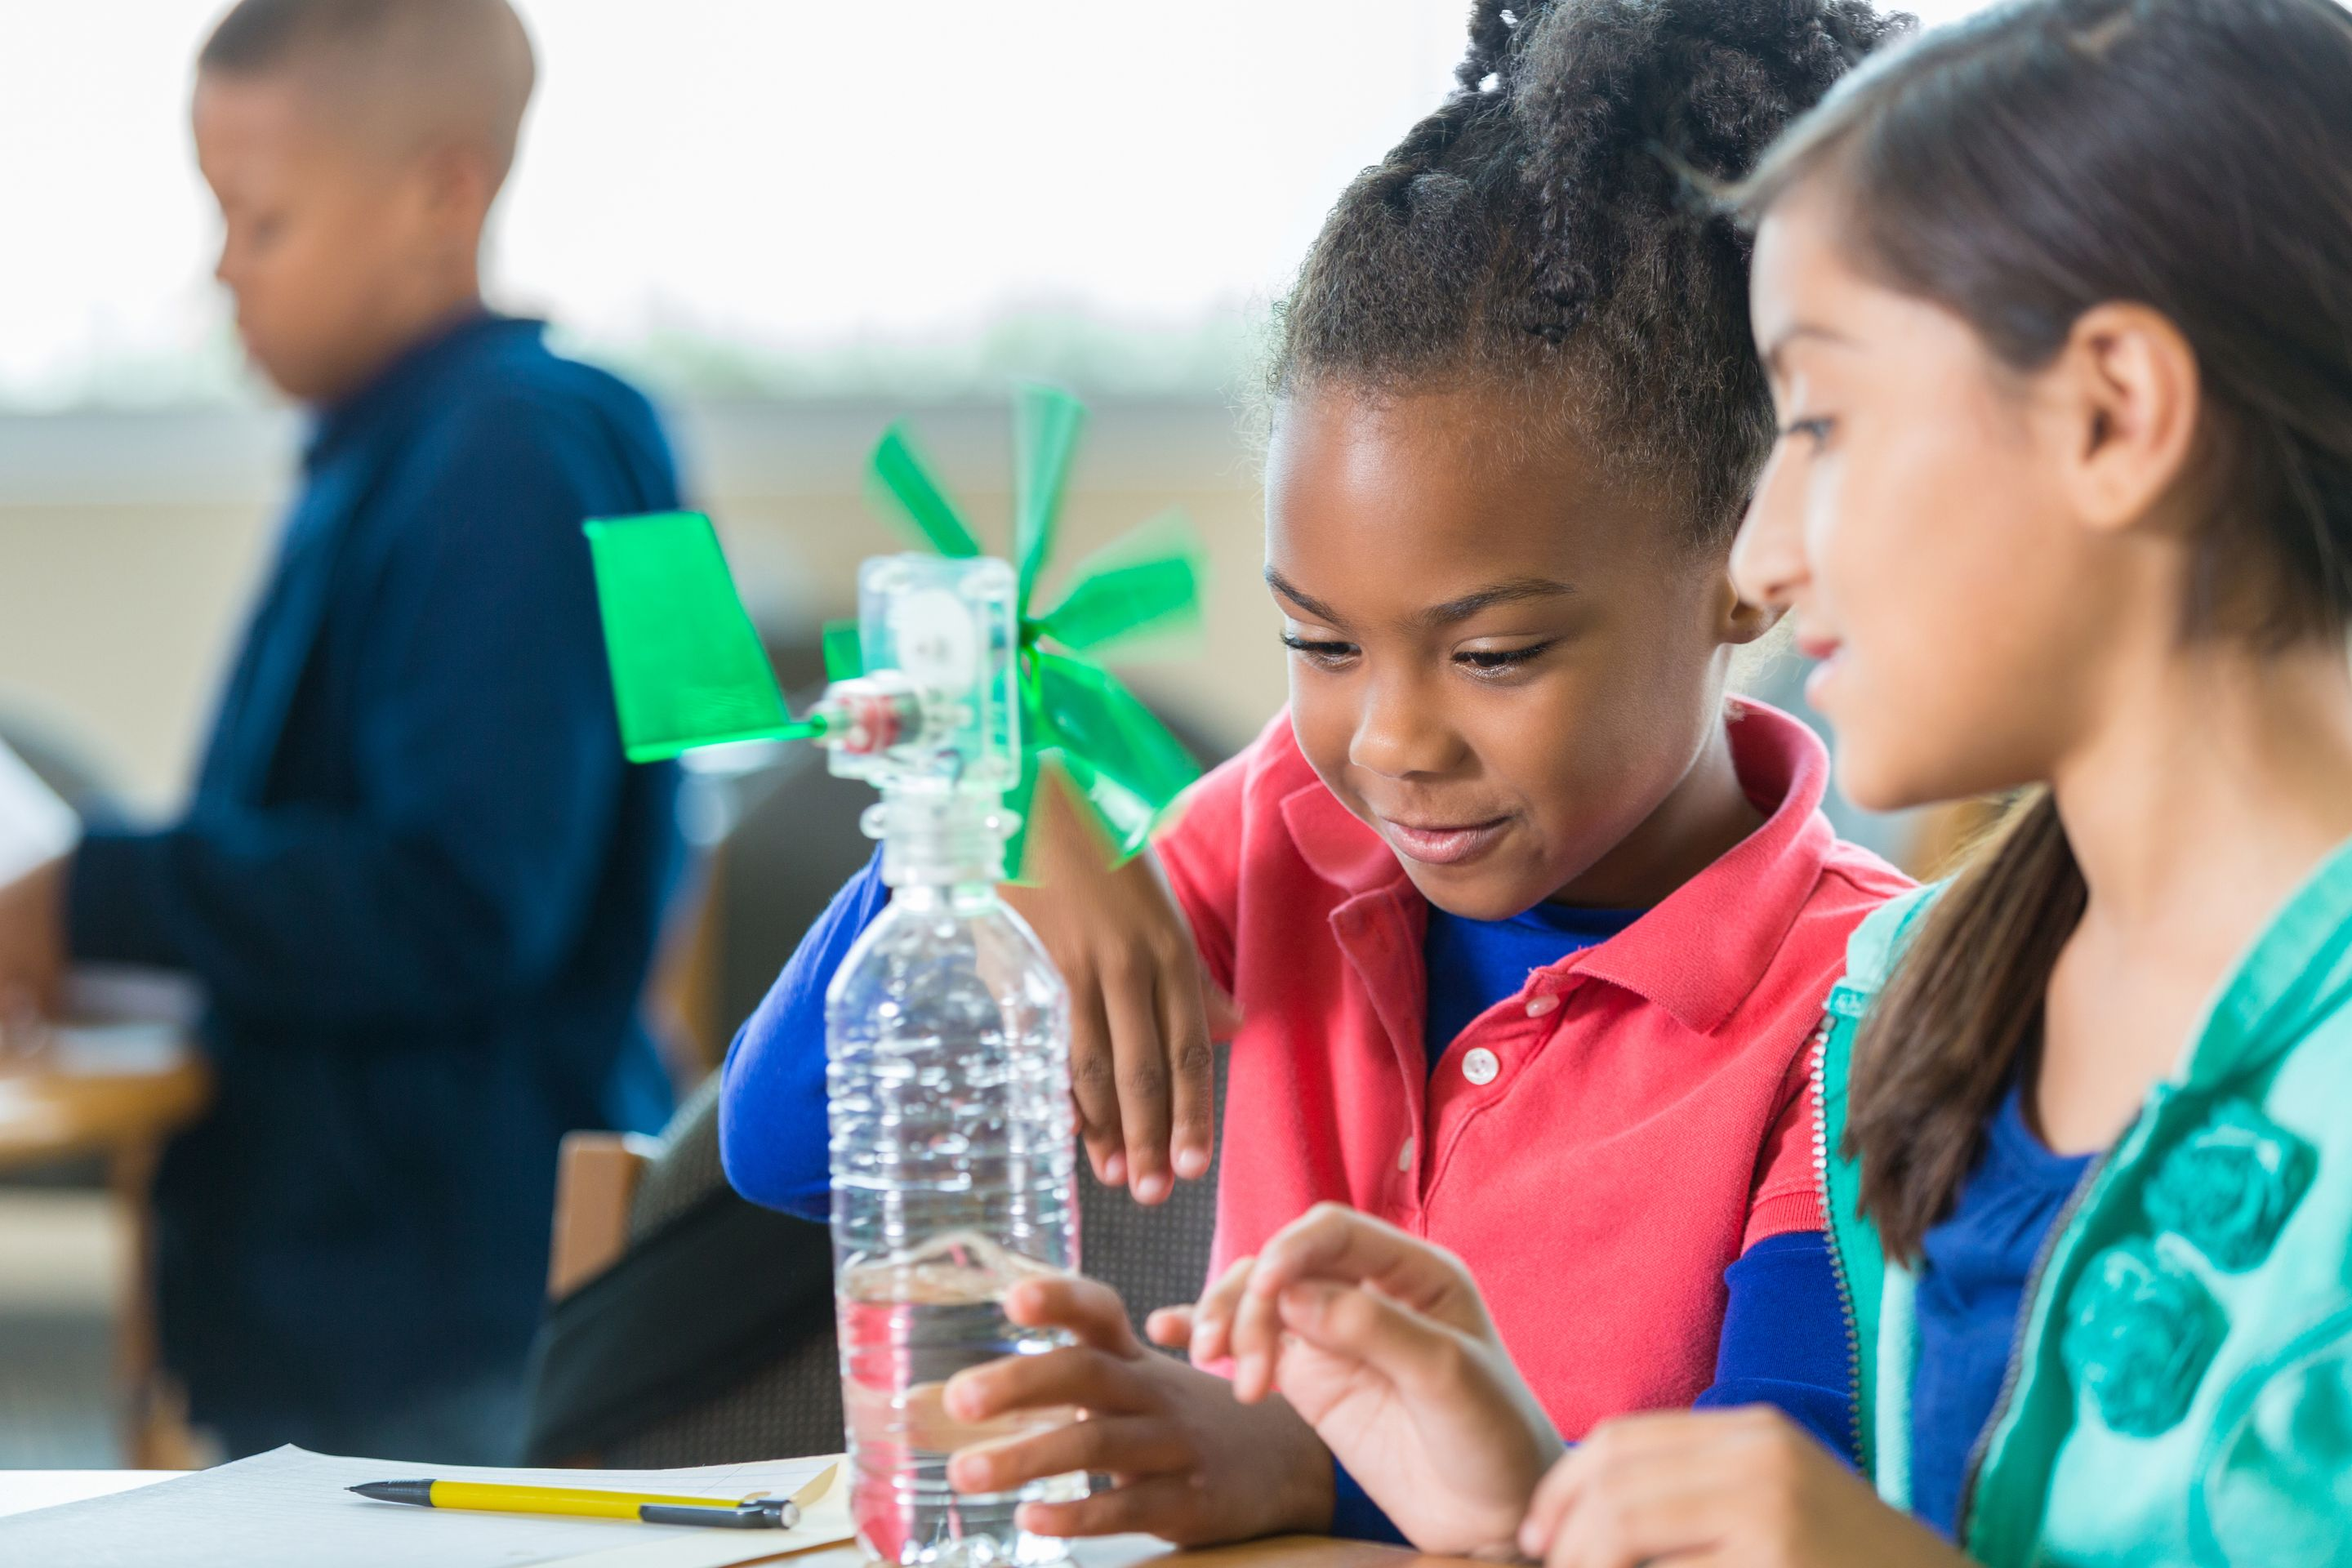 4 Ways To Develop Creativity In Students